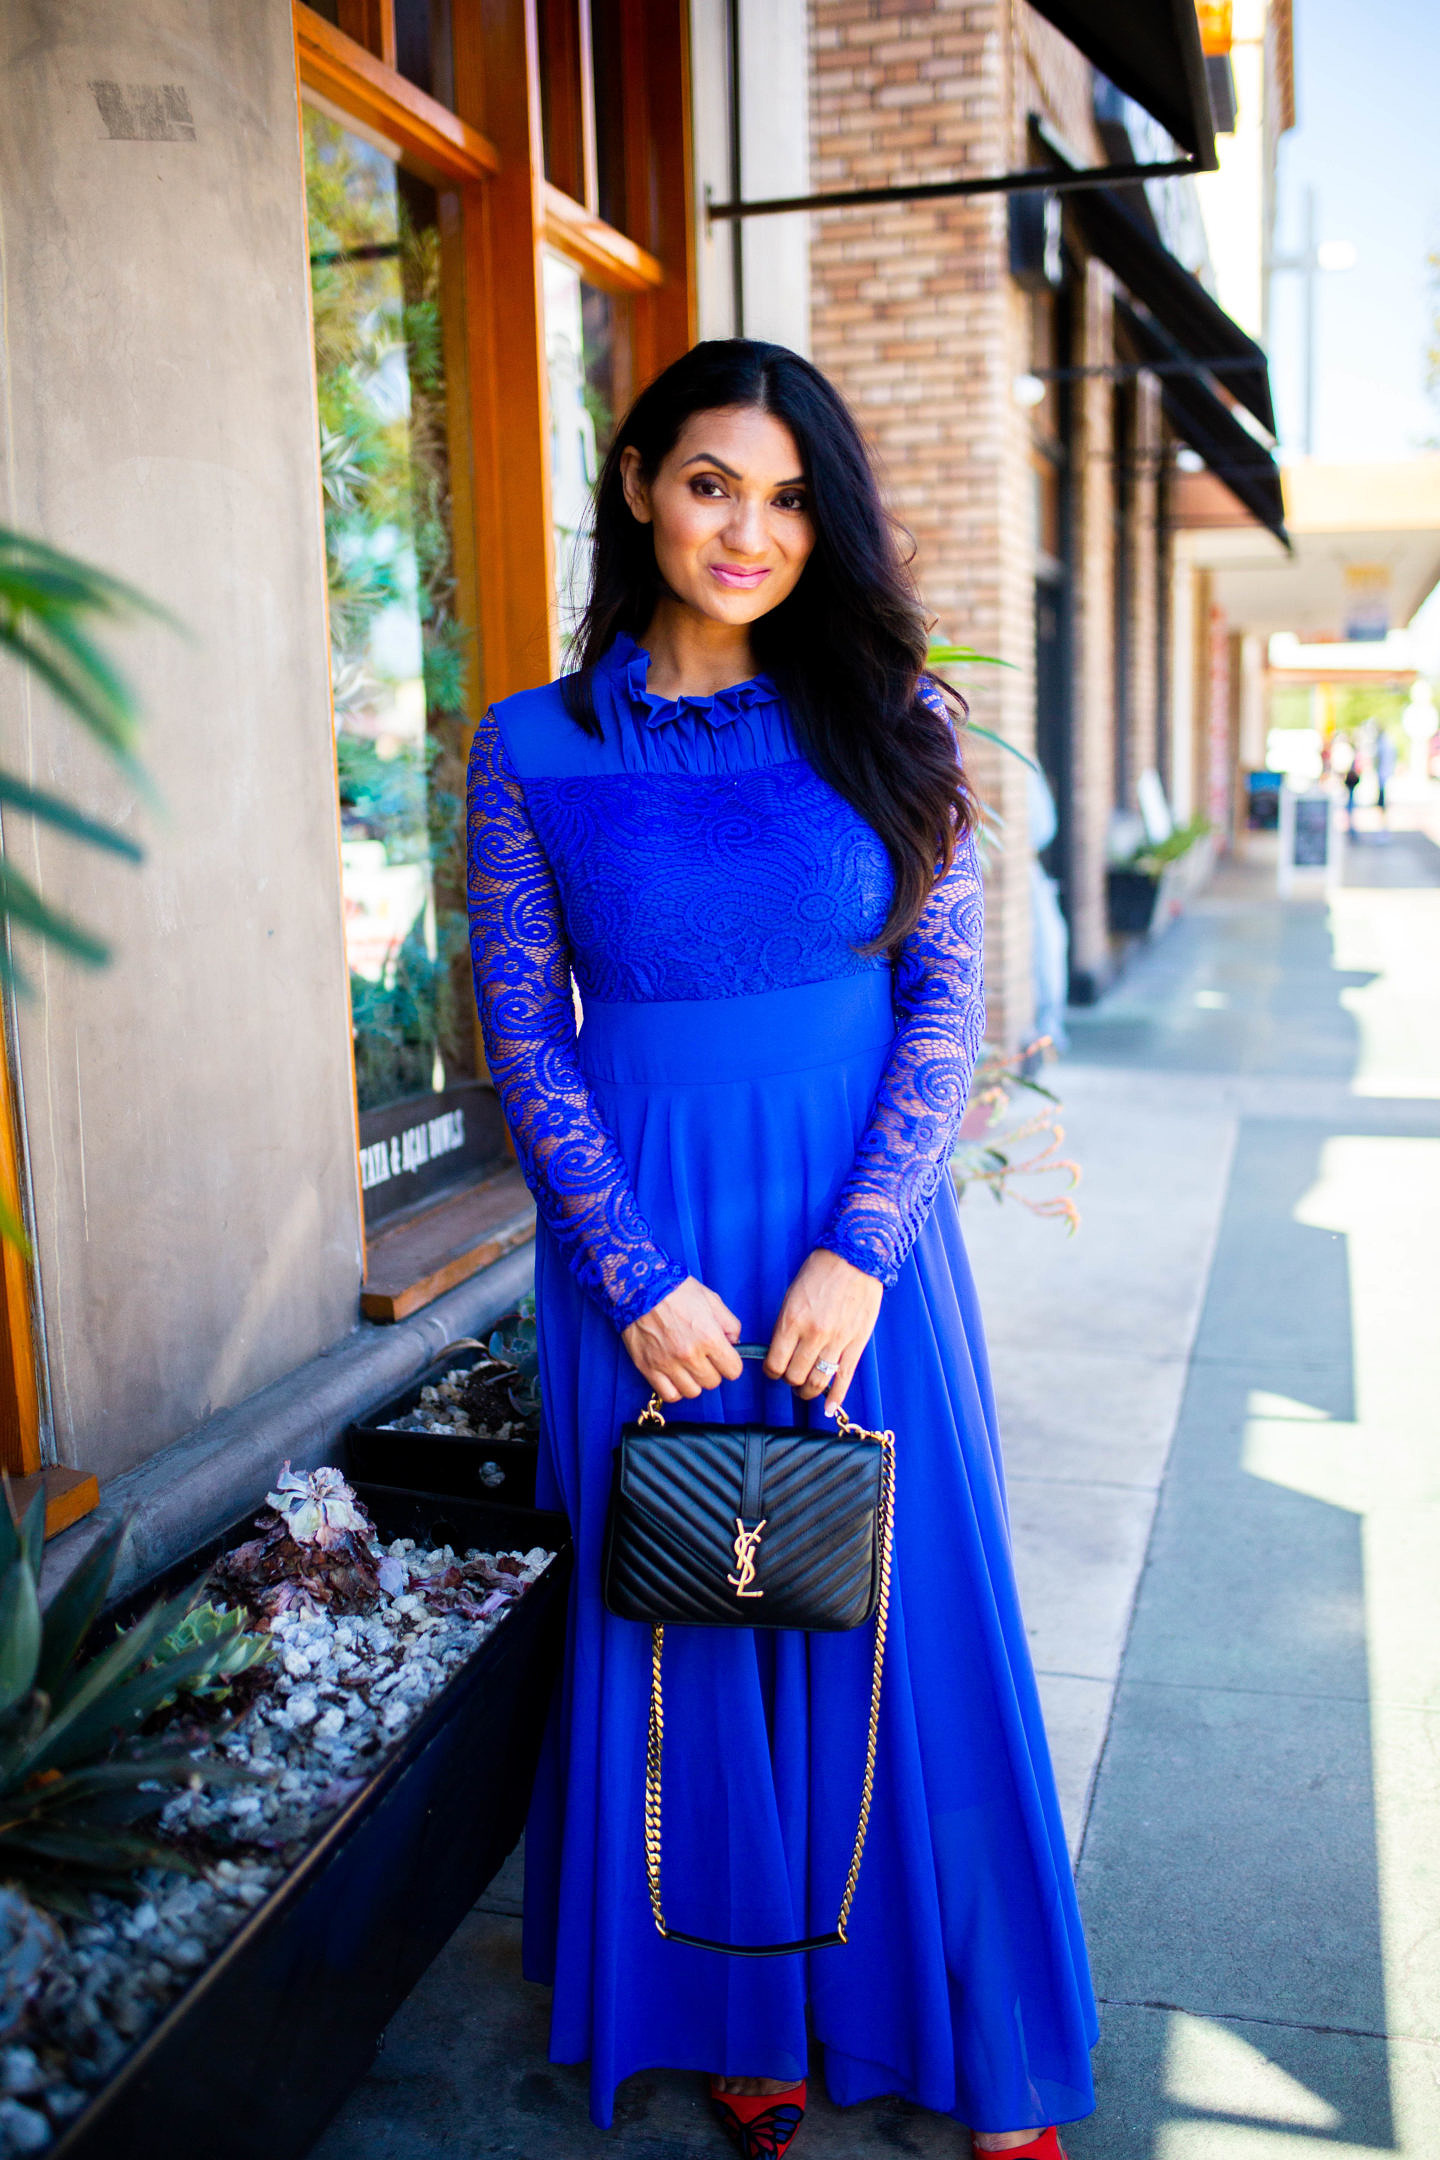 Looking to add color to your wardrobe? See how Orange County Blogger Debbie Savage is incorporating cobalt blue into her wardrobe this season with ease!